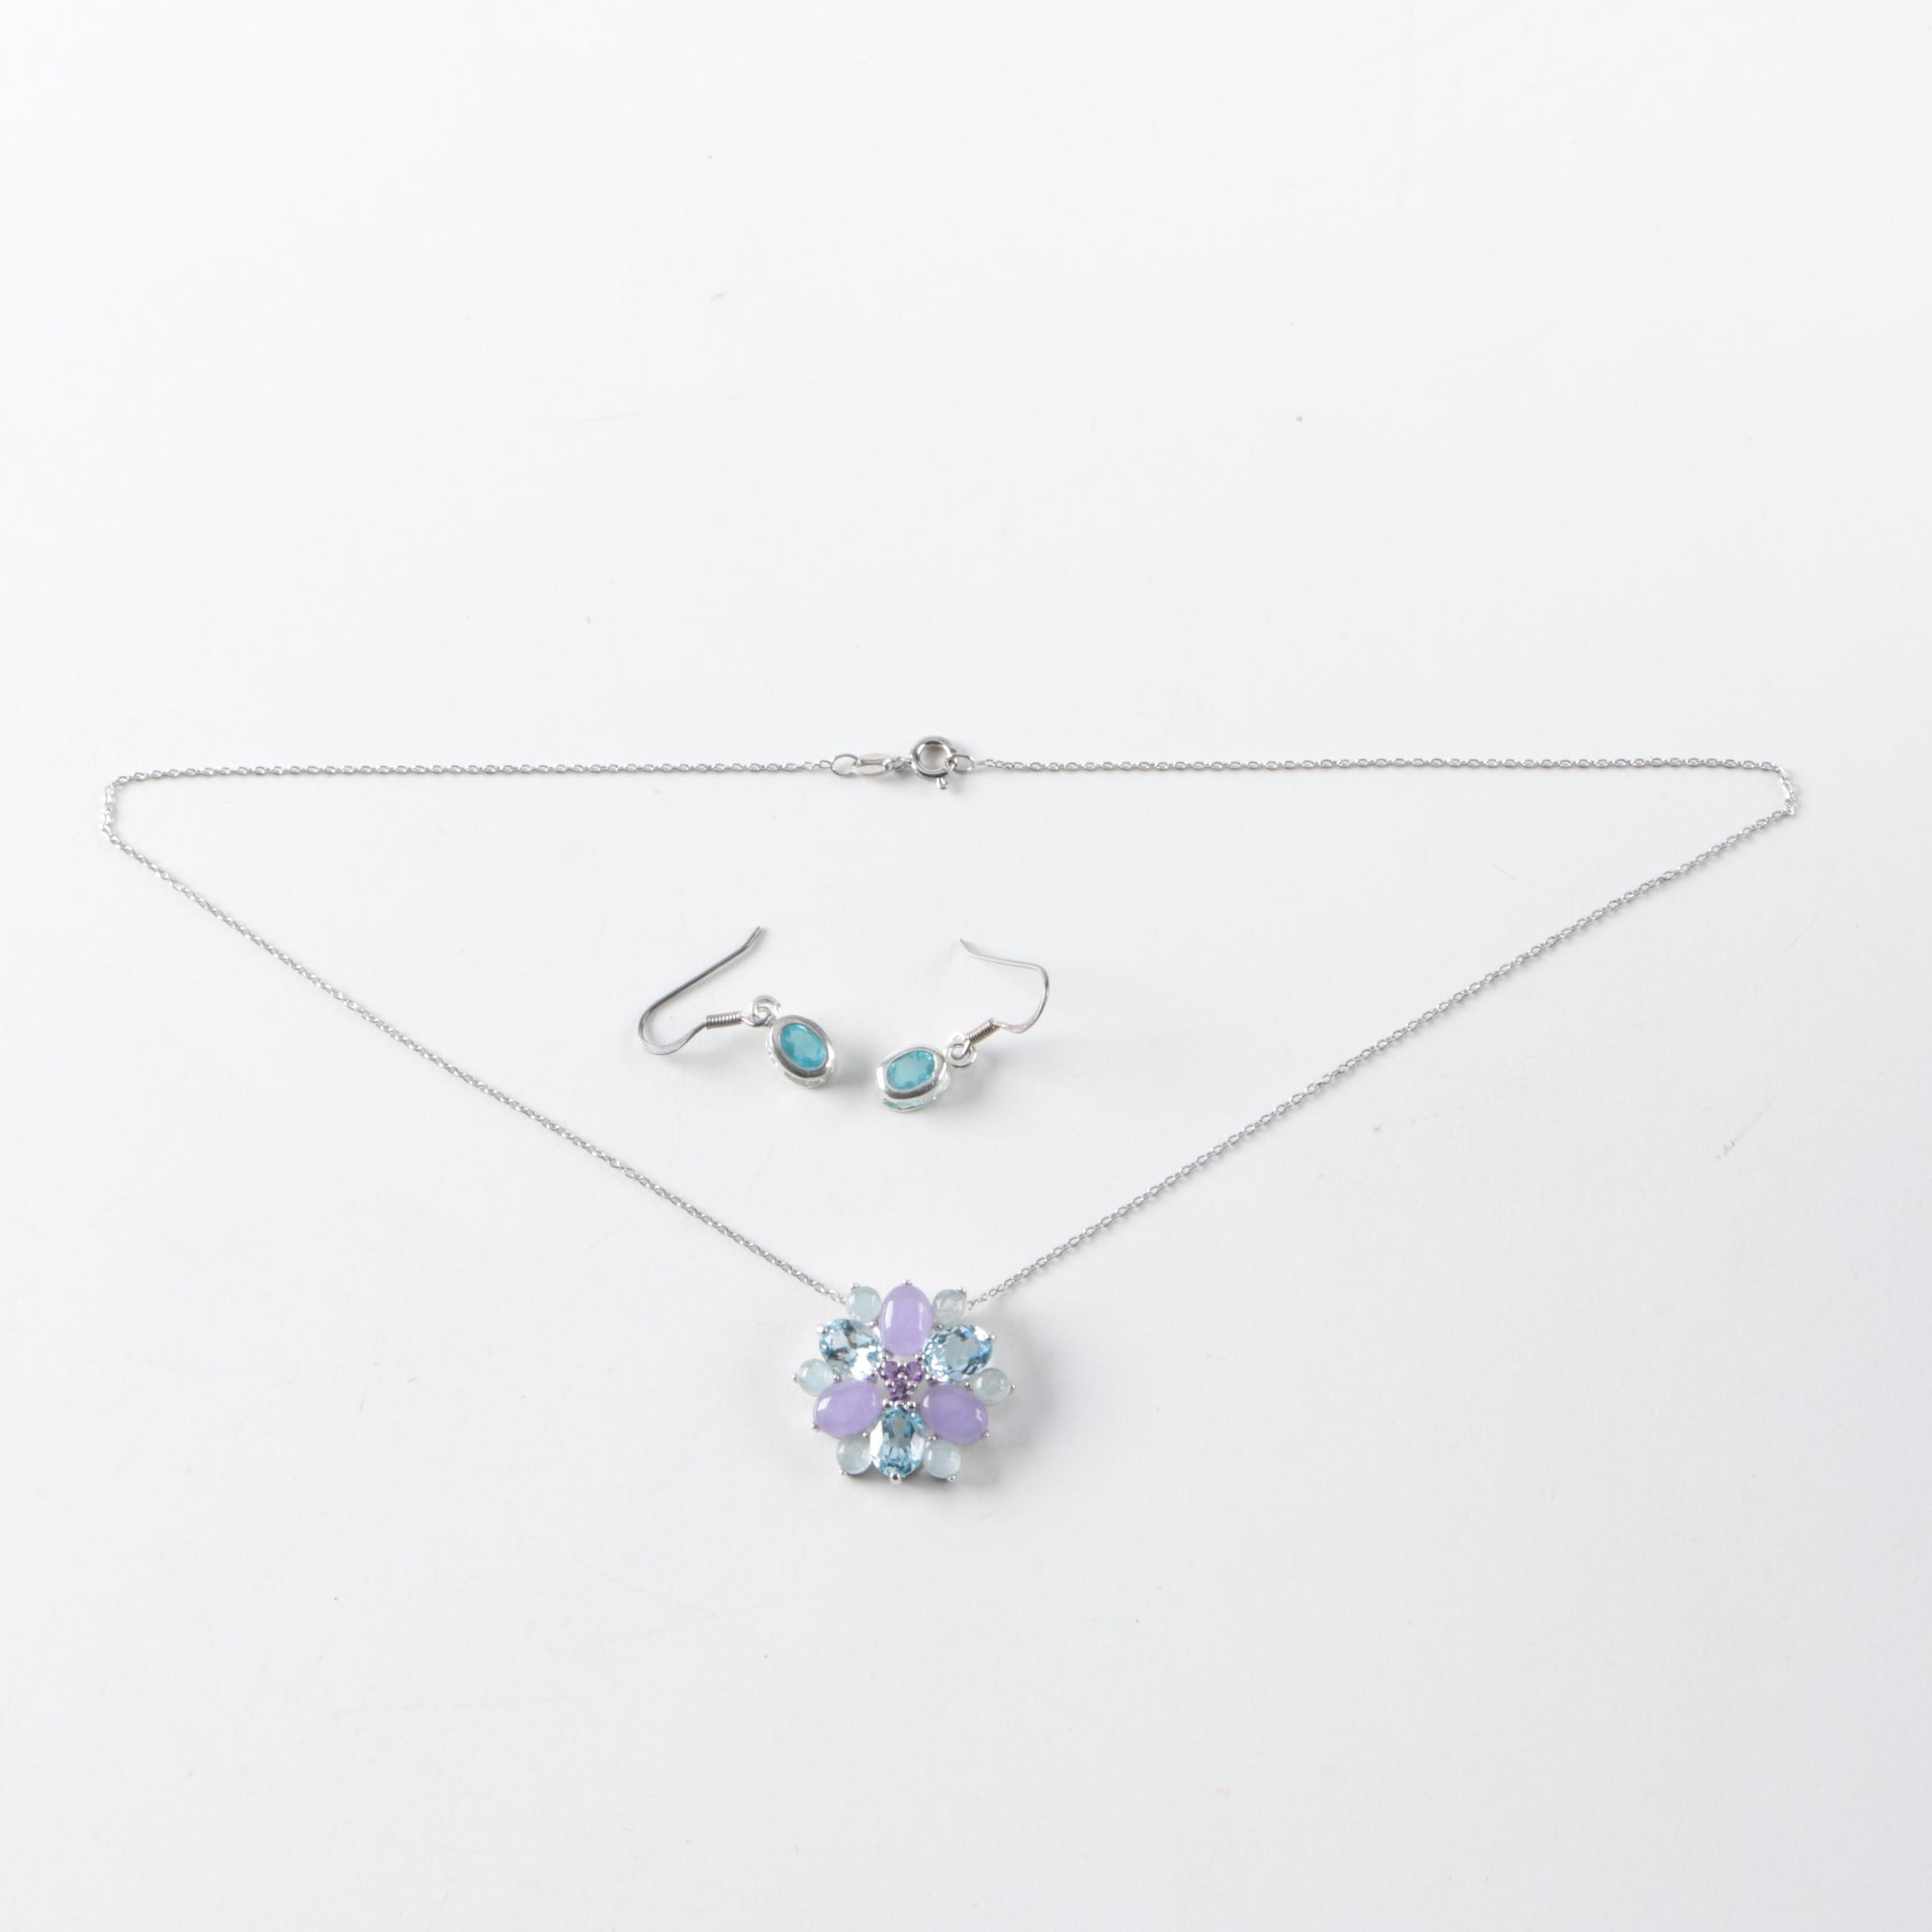 Sterling Silver Necklace and Earrings Featuring Blue Topaz